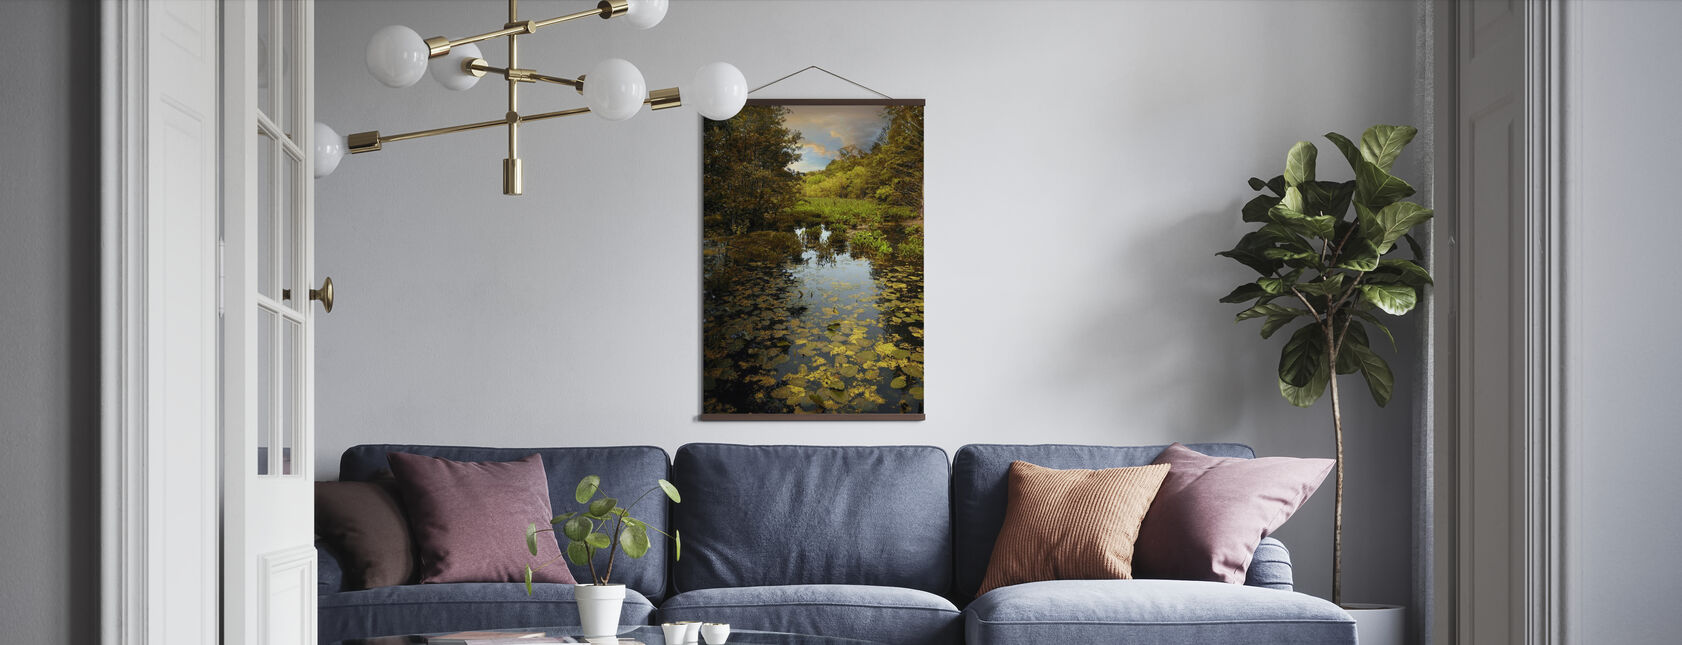 The Wetlands - Poster - Living Room